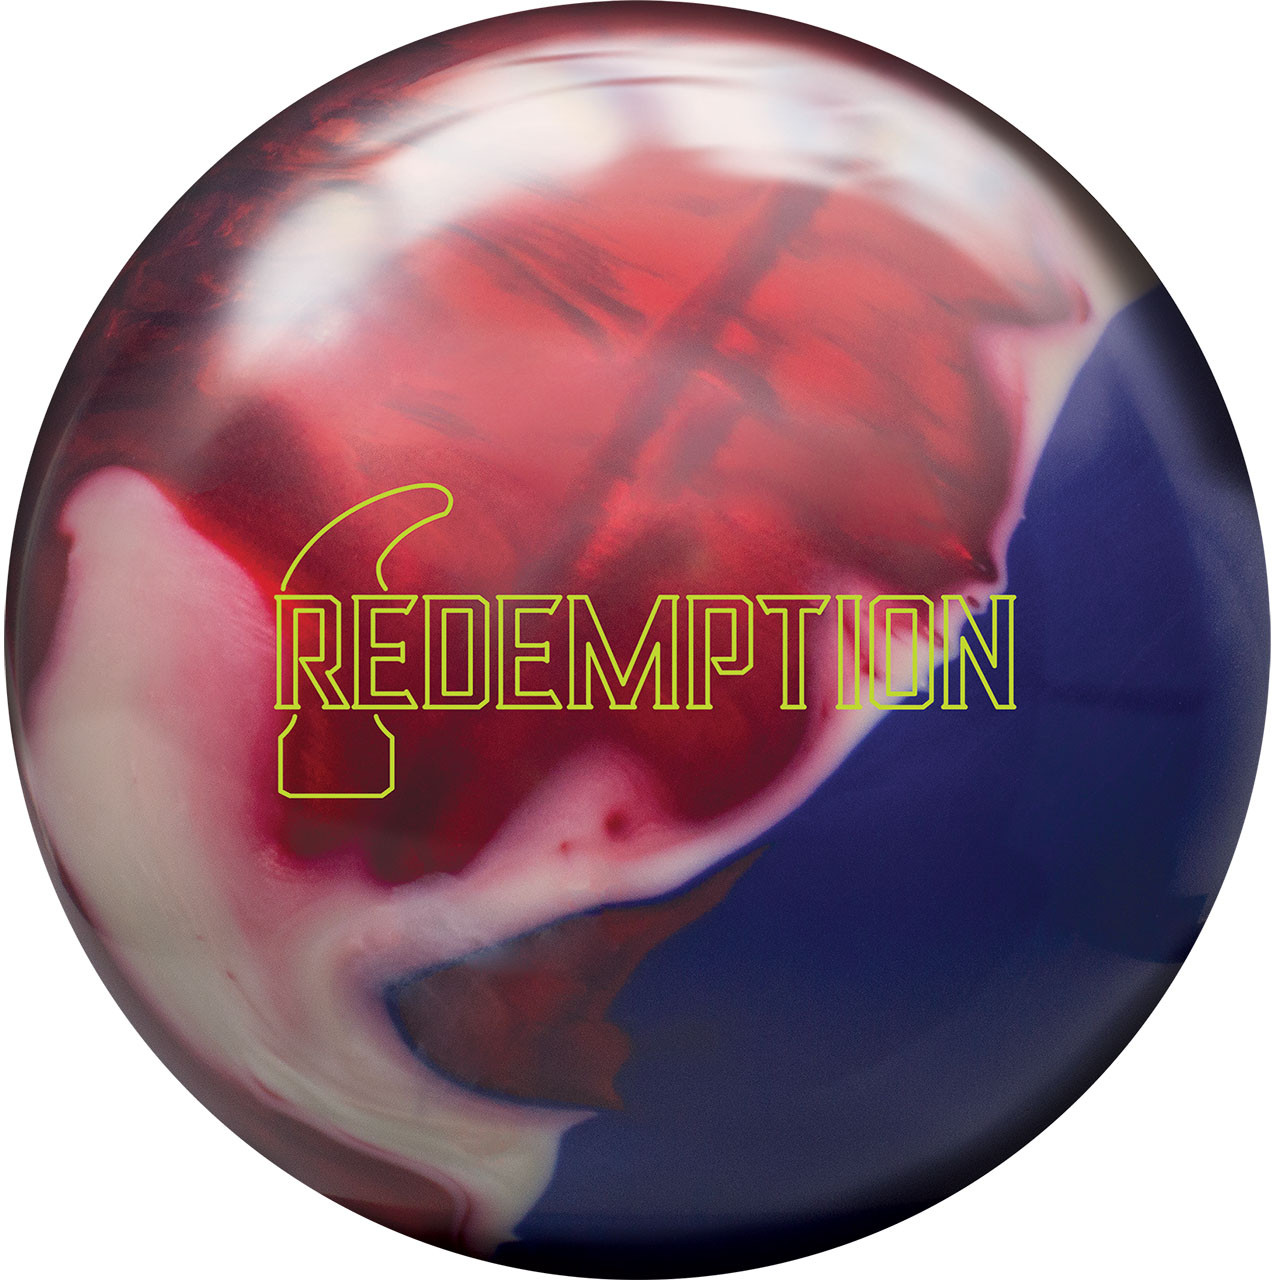 15lb Hammer Redemption Solid Bowling Ball NEW!